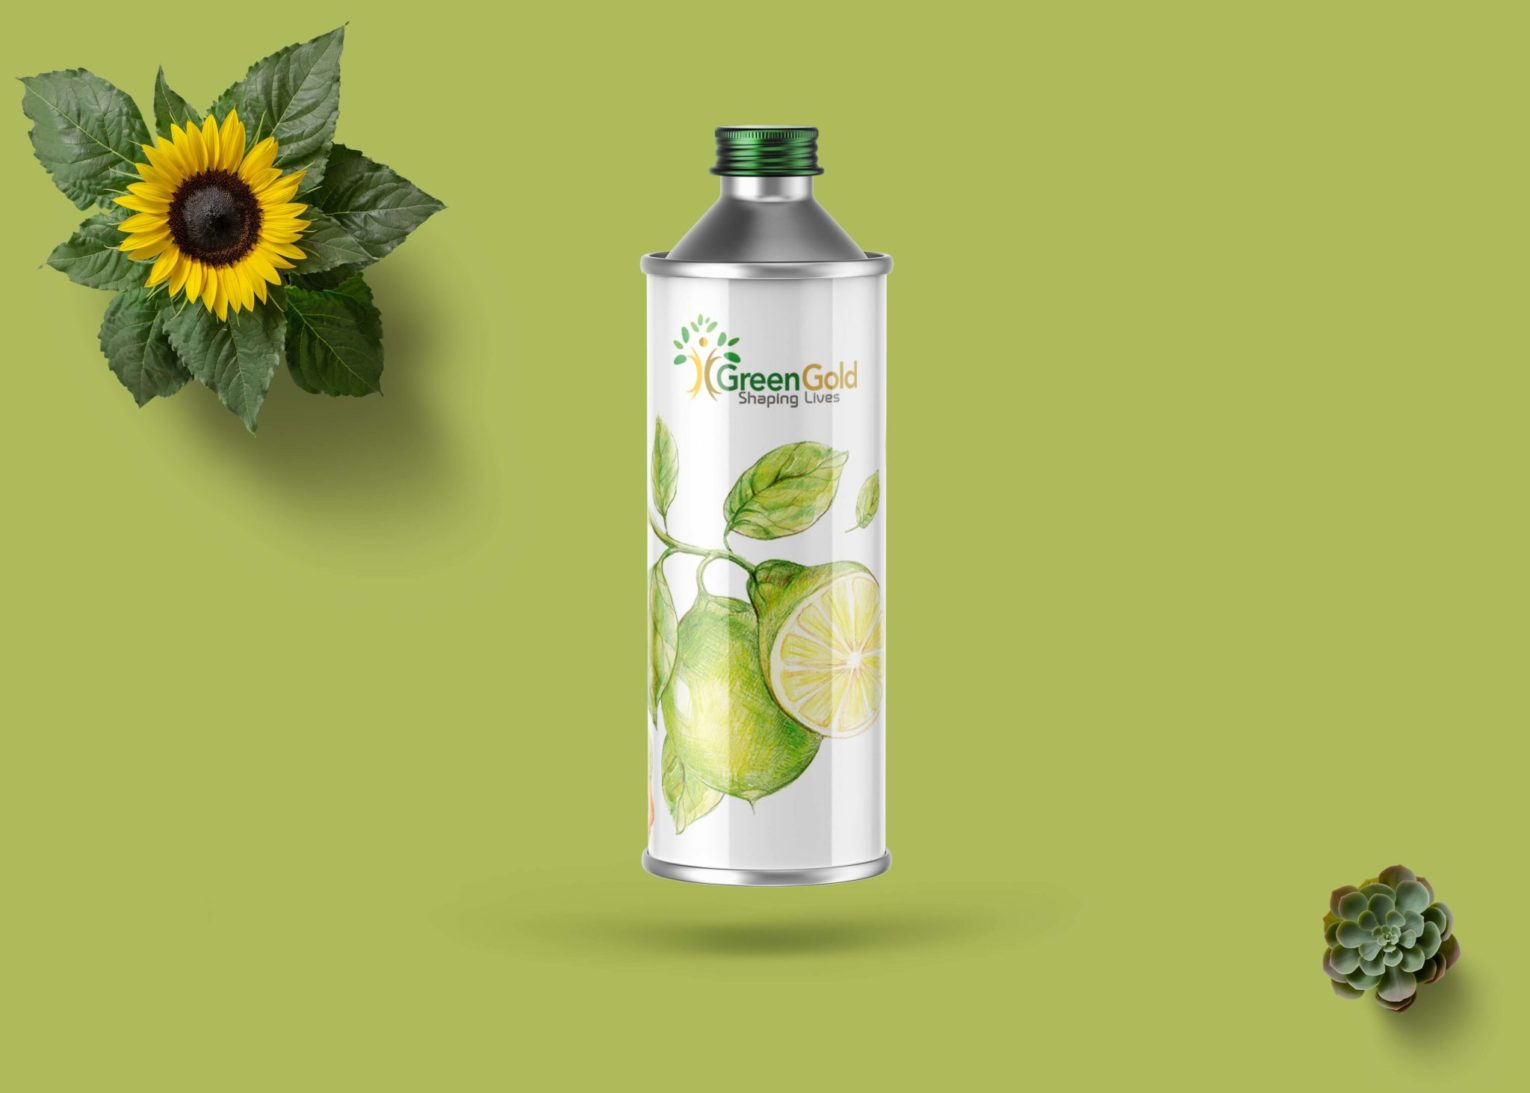 Stylisg Designer Green Tin Bottle Mockup